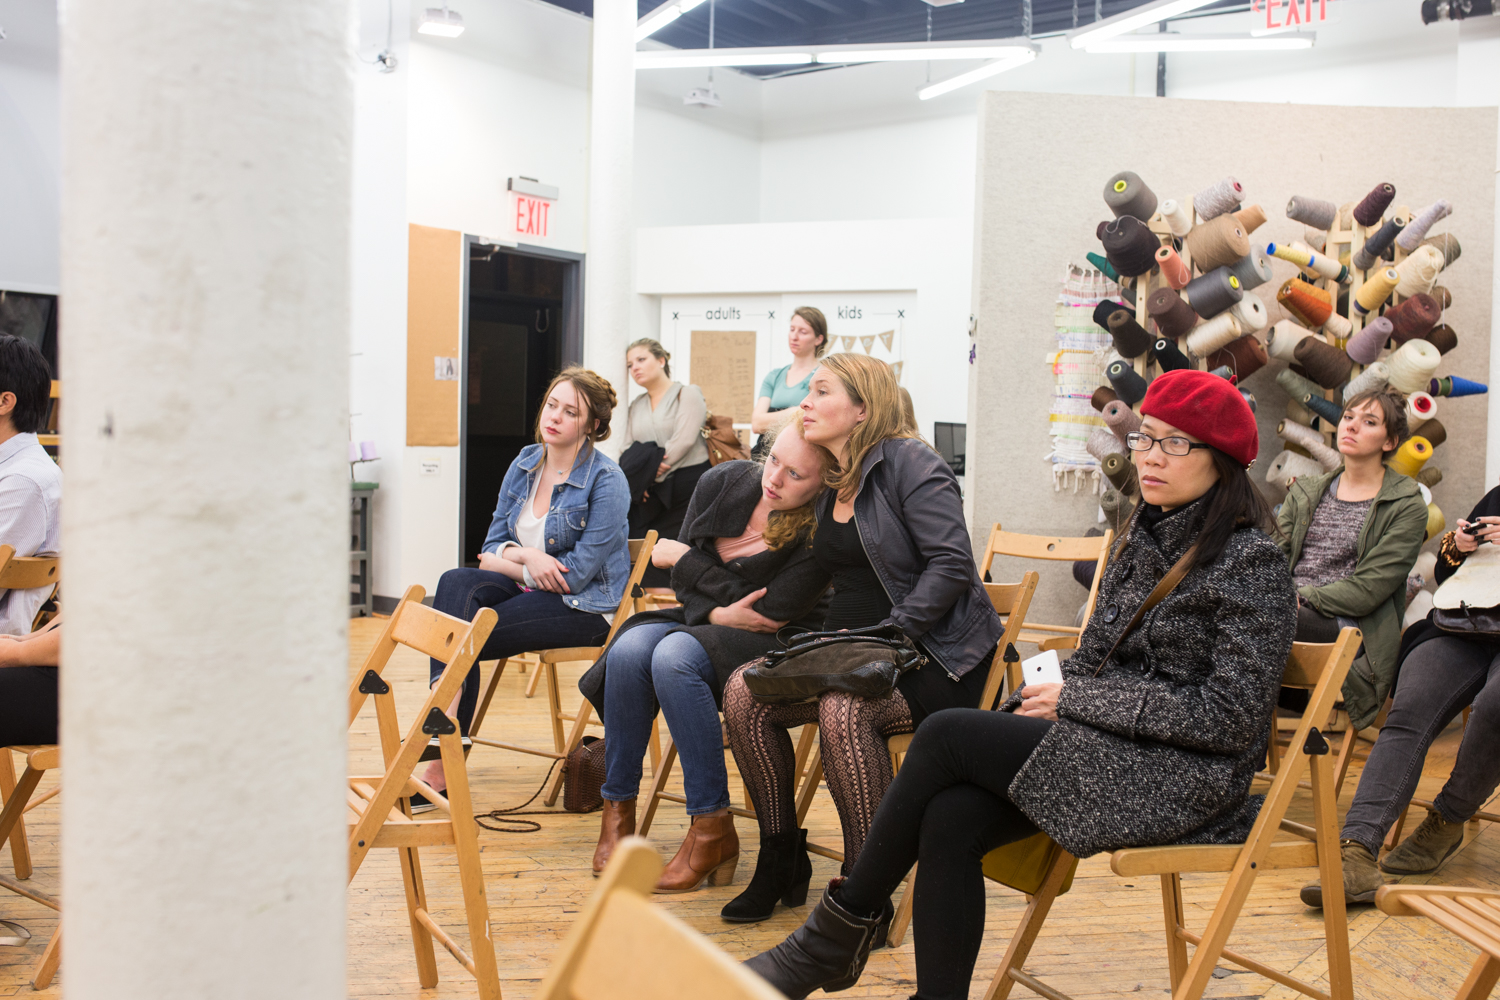 A different group of the audience watches the performance. Two women are leaning onto each other as they hold hands.